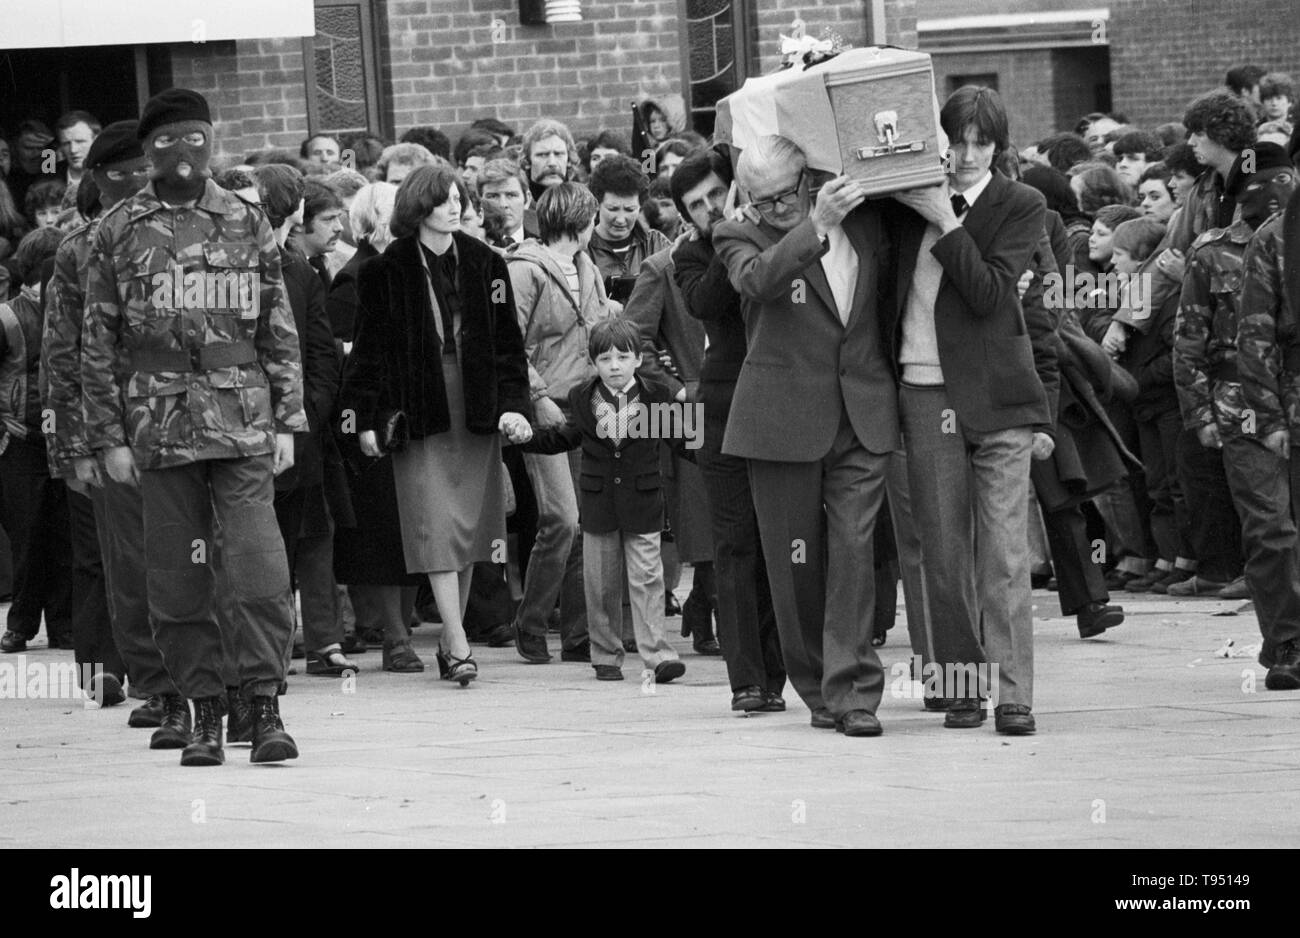 The coffin of Bobby Sands, MP is carried by his father (left, wearing glasses), his brother (r) and Owen Carron (moustache), his election agent, from St Luke's Church on the Twinbrook Estate, Belfast. the coffin is follow by Bobby Sands's sister, Marcella, who is holding the hand of Sands's son Gerald, and other members of the family en route to the burial in Milltown cemetery. - Stock Image